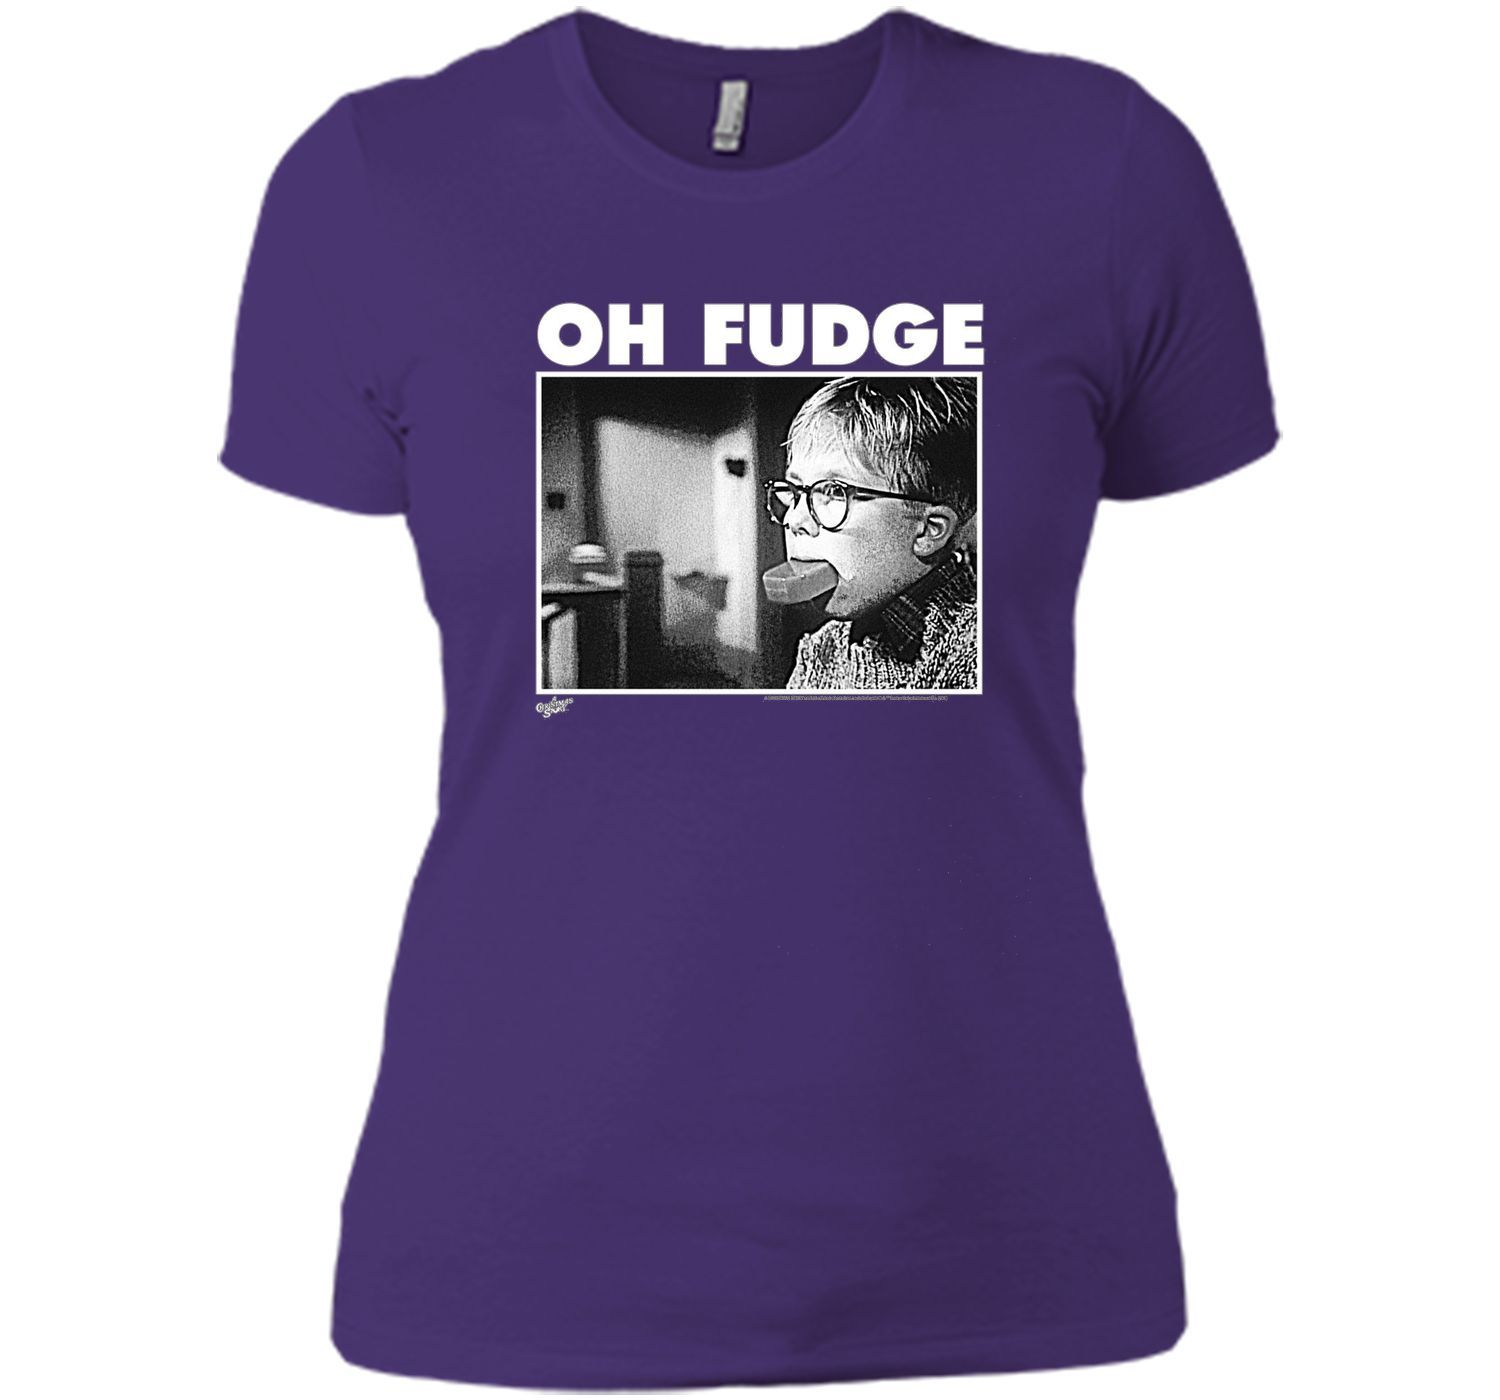 A Christmas Story Oh Fudge Soap Pic t-shirt   Products   Pinterest ...